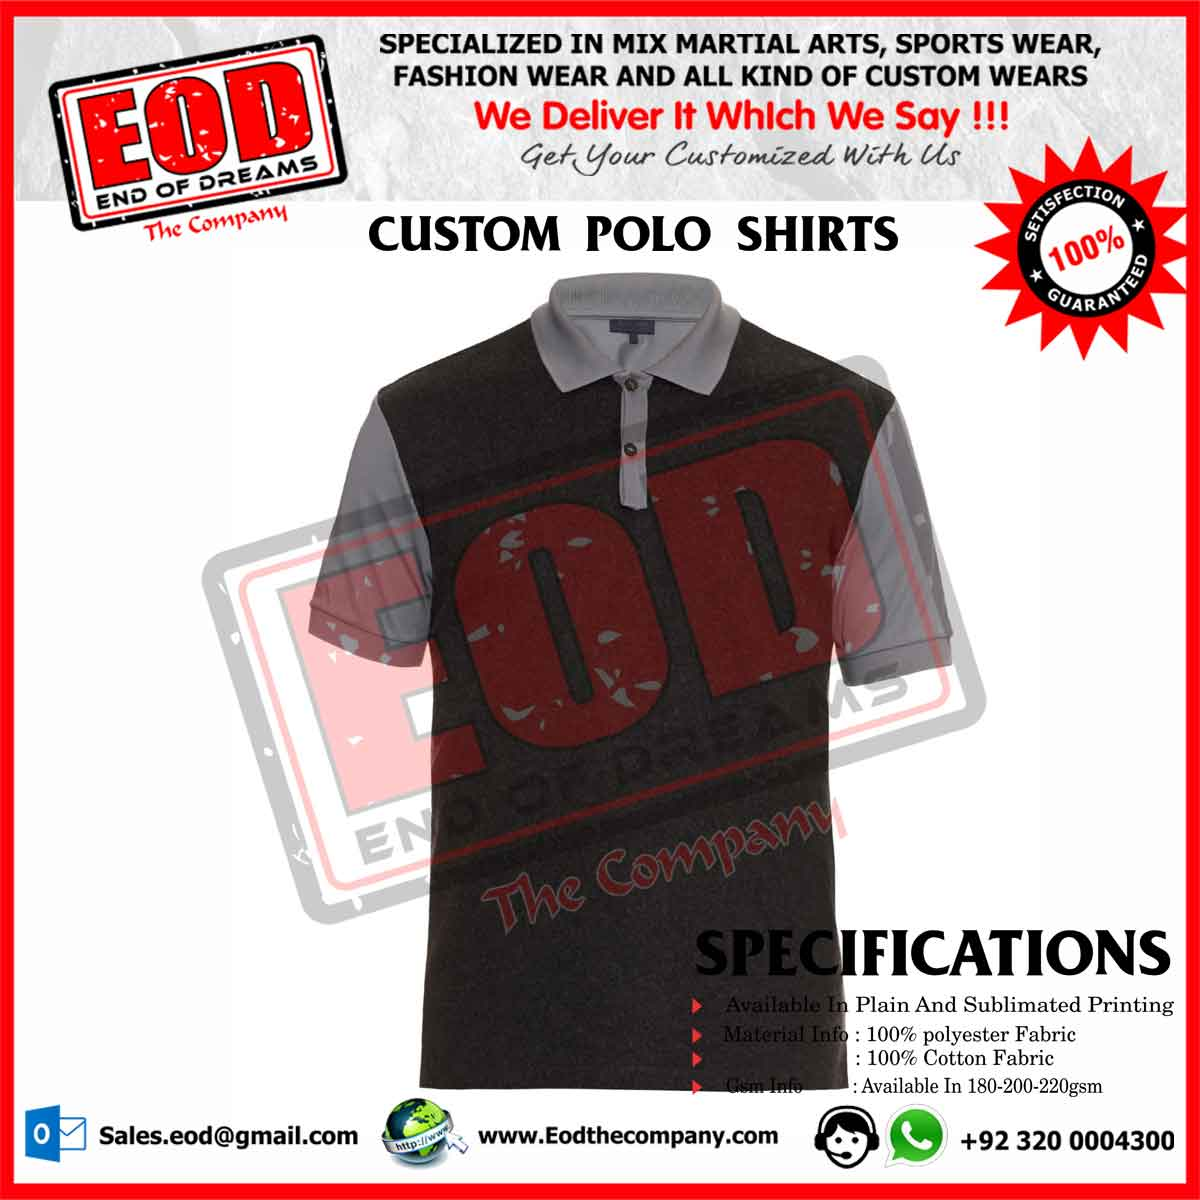 Custom Polo Shirts Near Me – EDGE Engineering and Consulting Limited